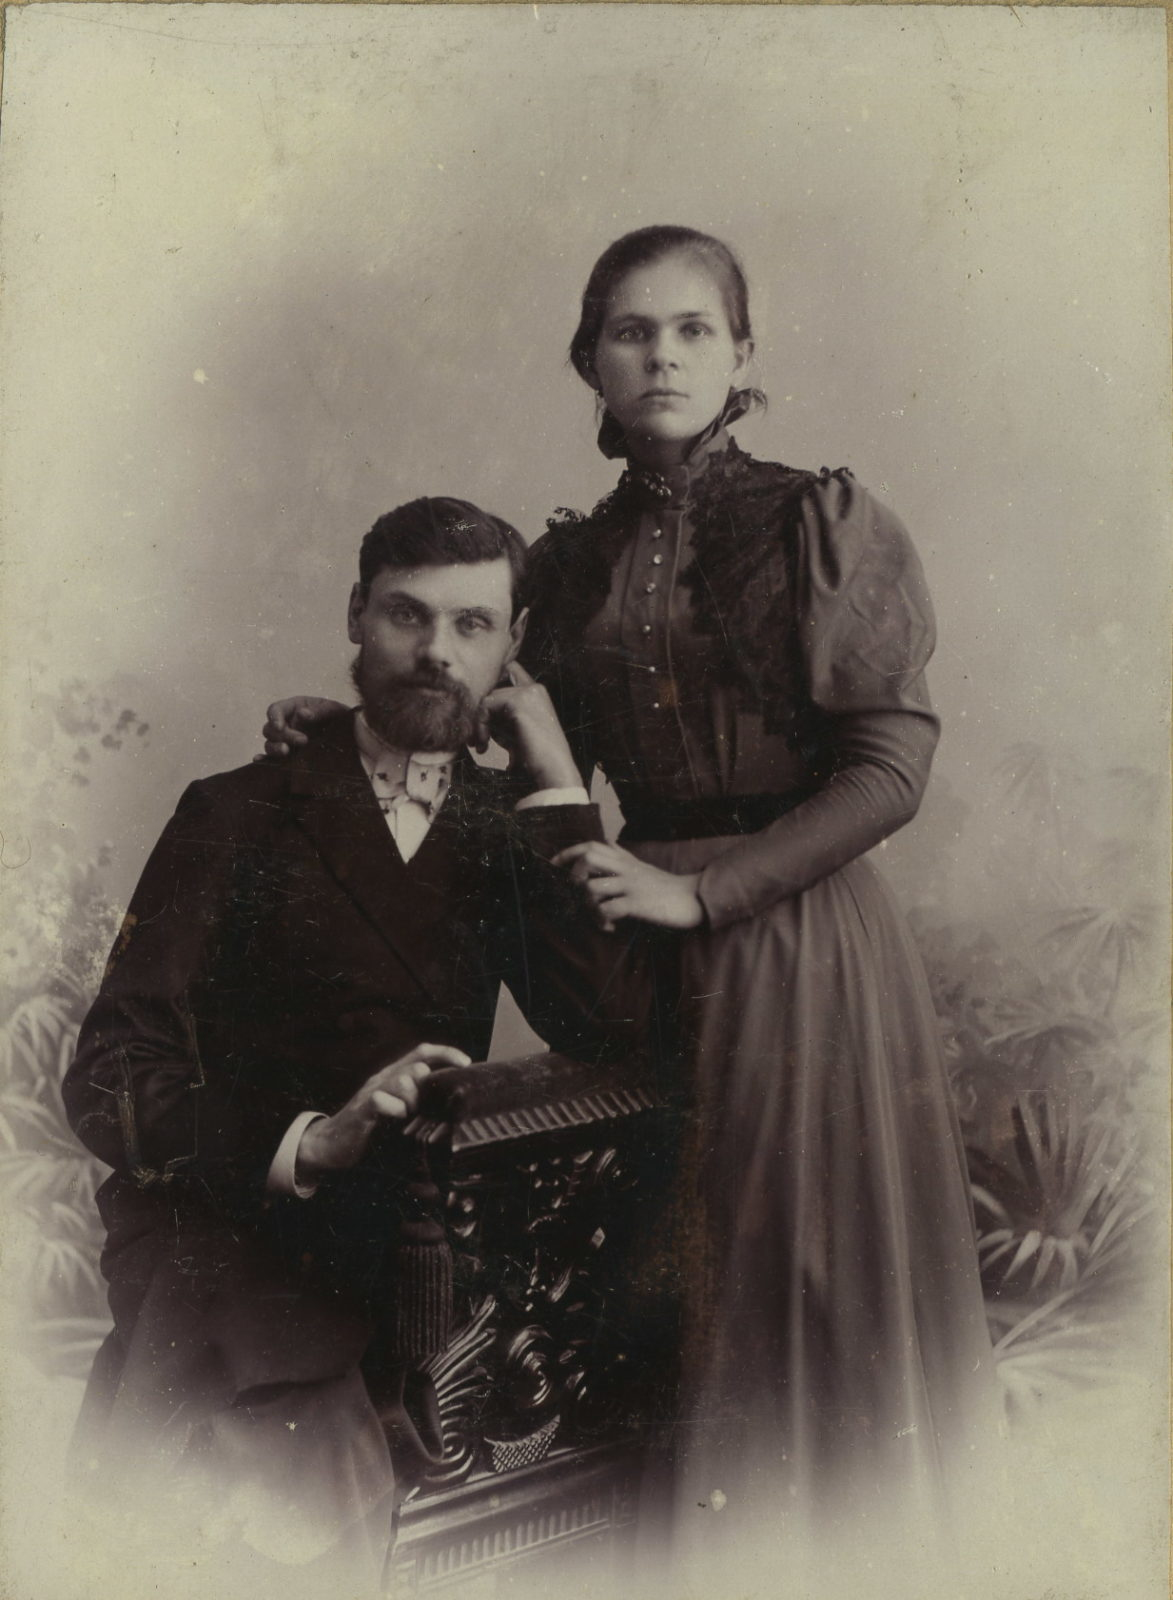 Murom, Vladimir Province, Russia. Married couple 1900-1903.